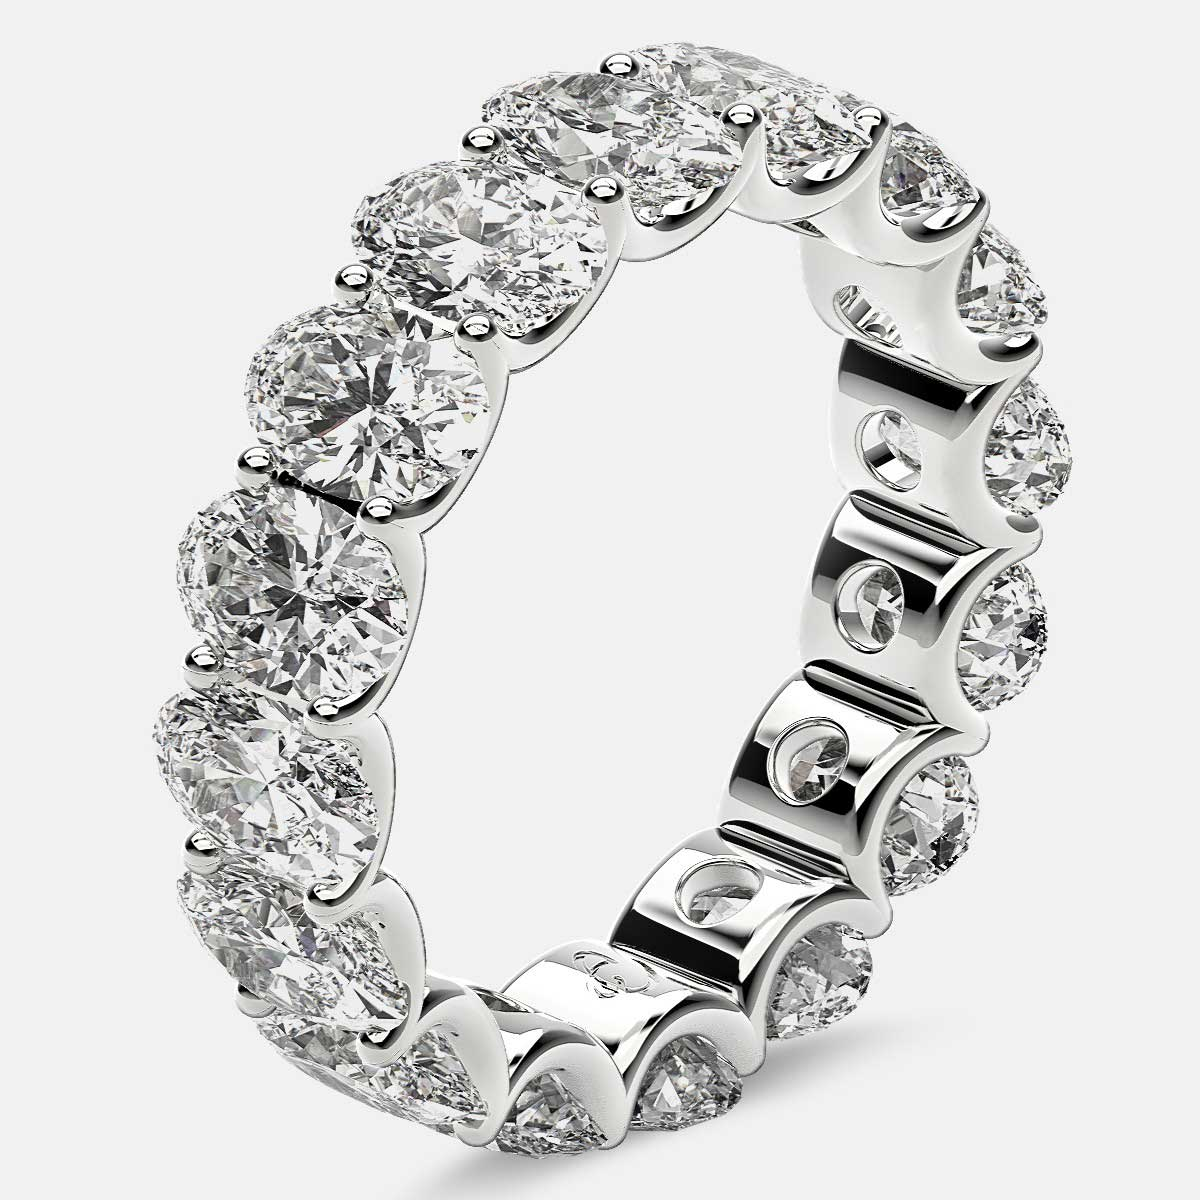 Curved Prong Eternity Ring with Oval Diamonds in 18k White Gold